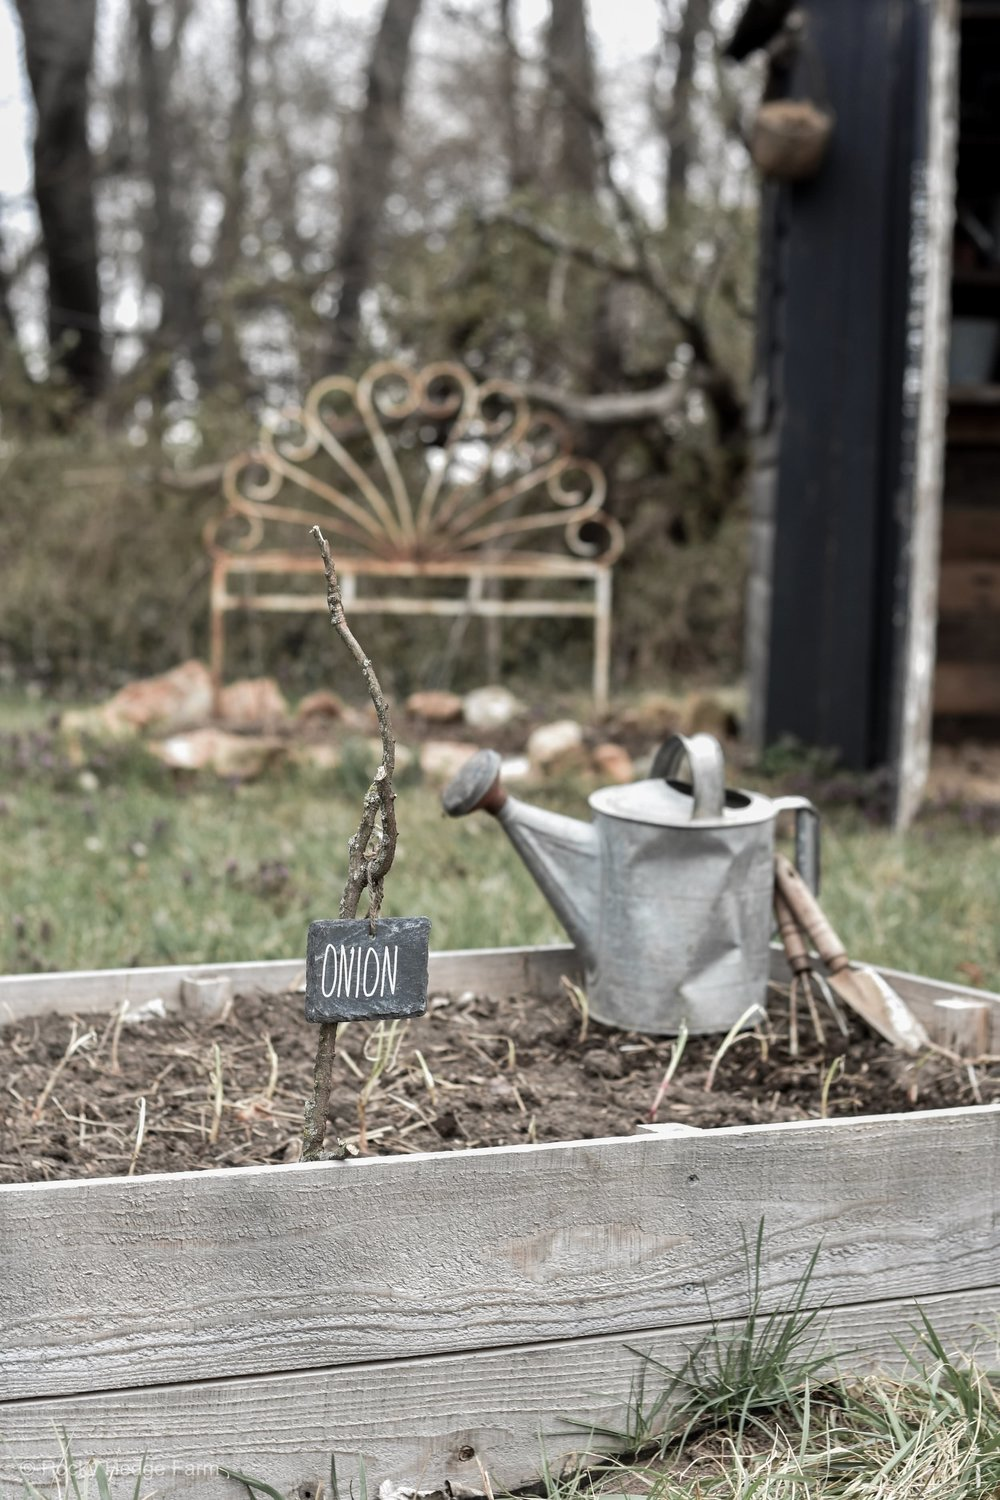 A simply guide for how to plant and grow onions from scratch! Rocky Hedge Farm